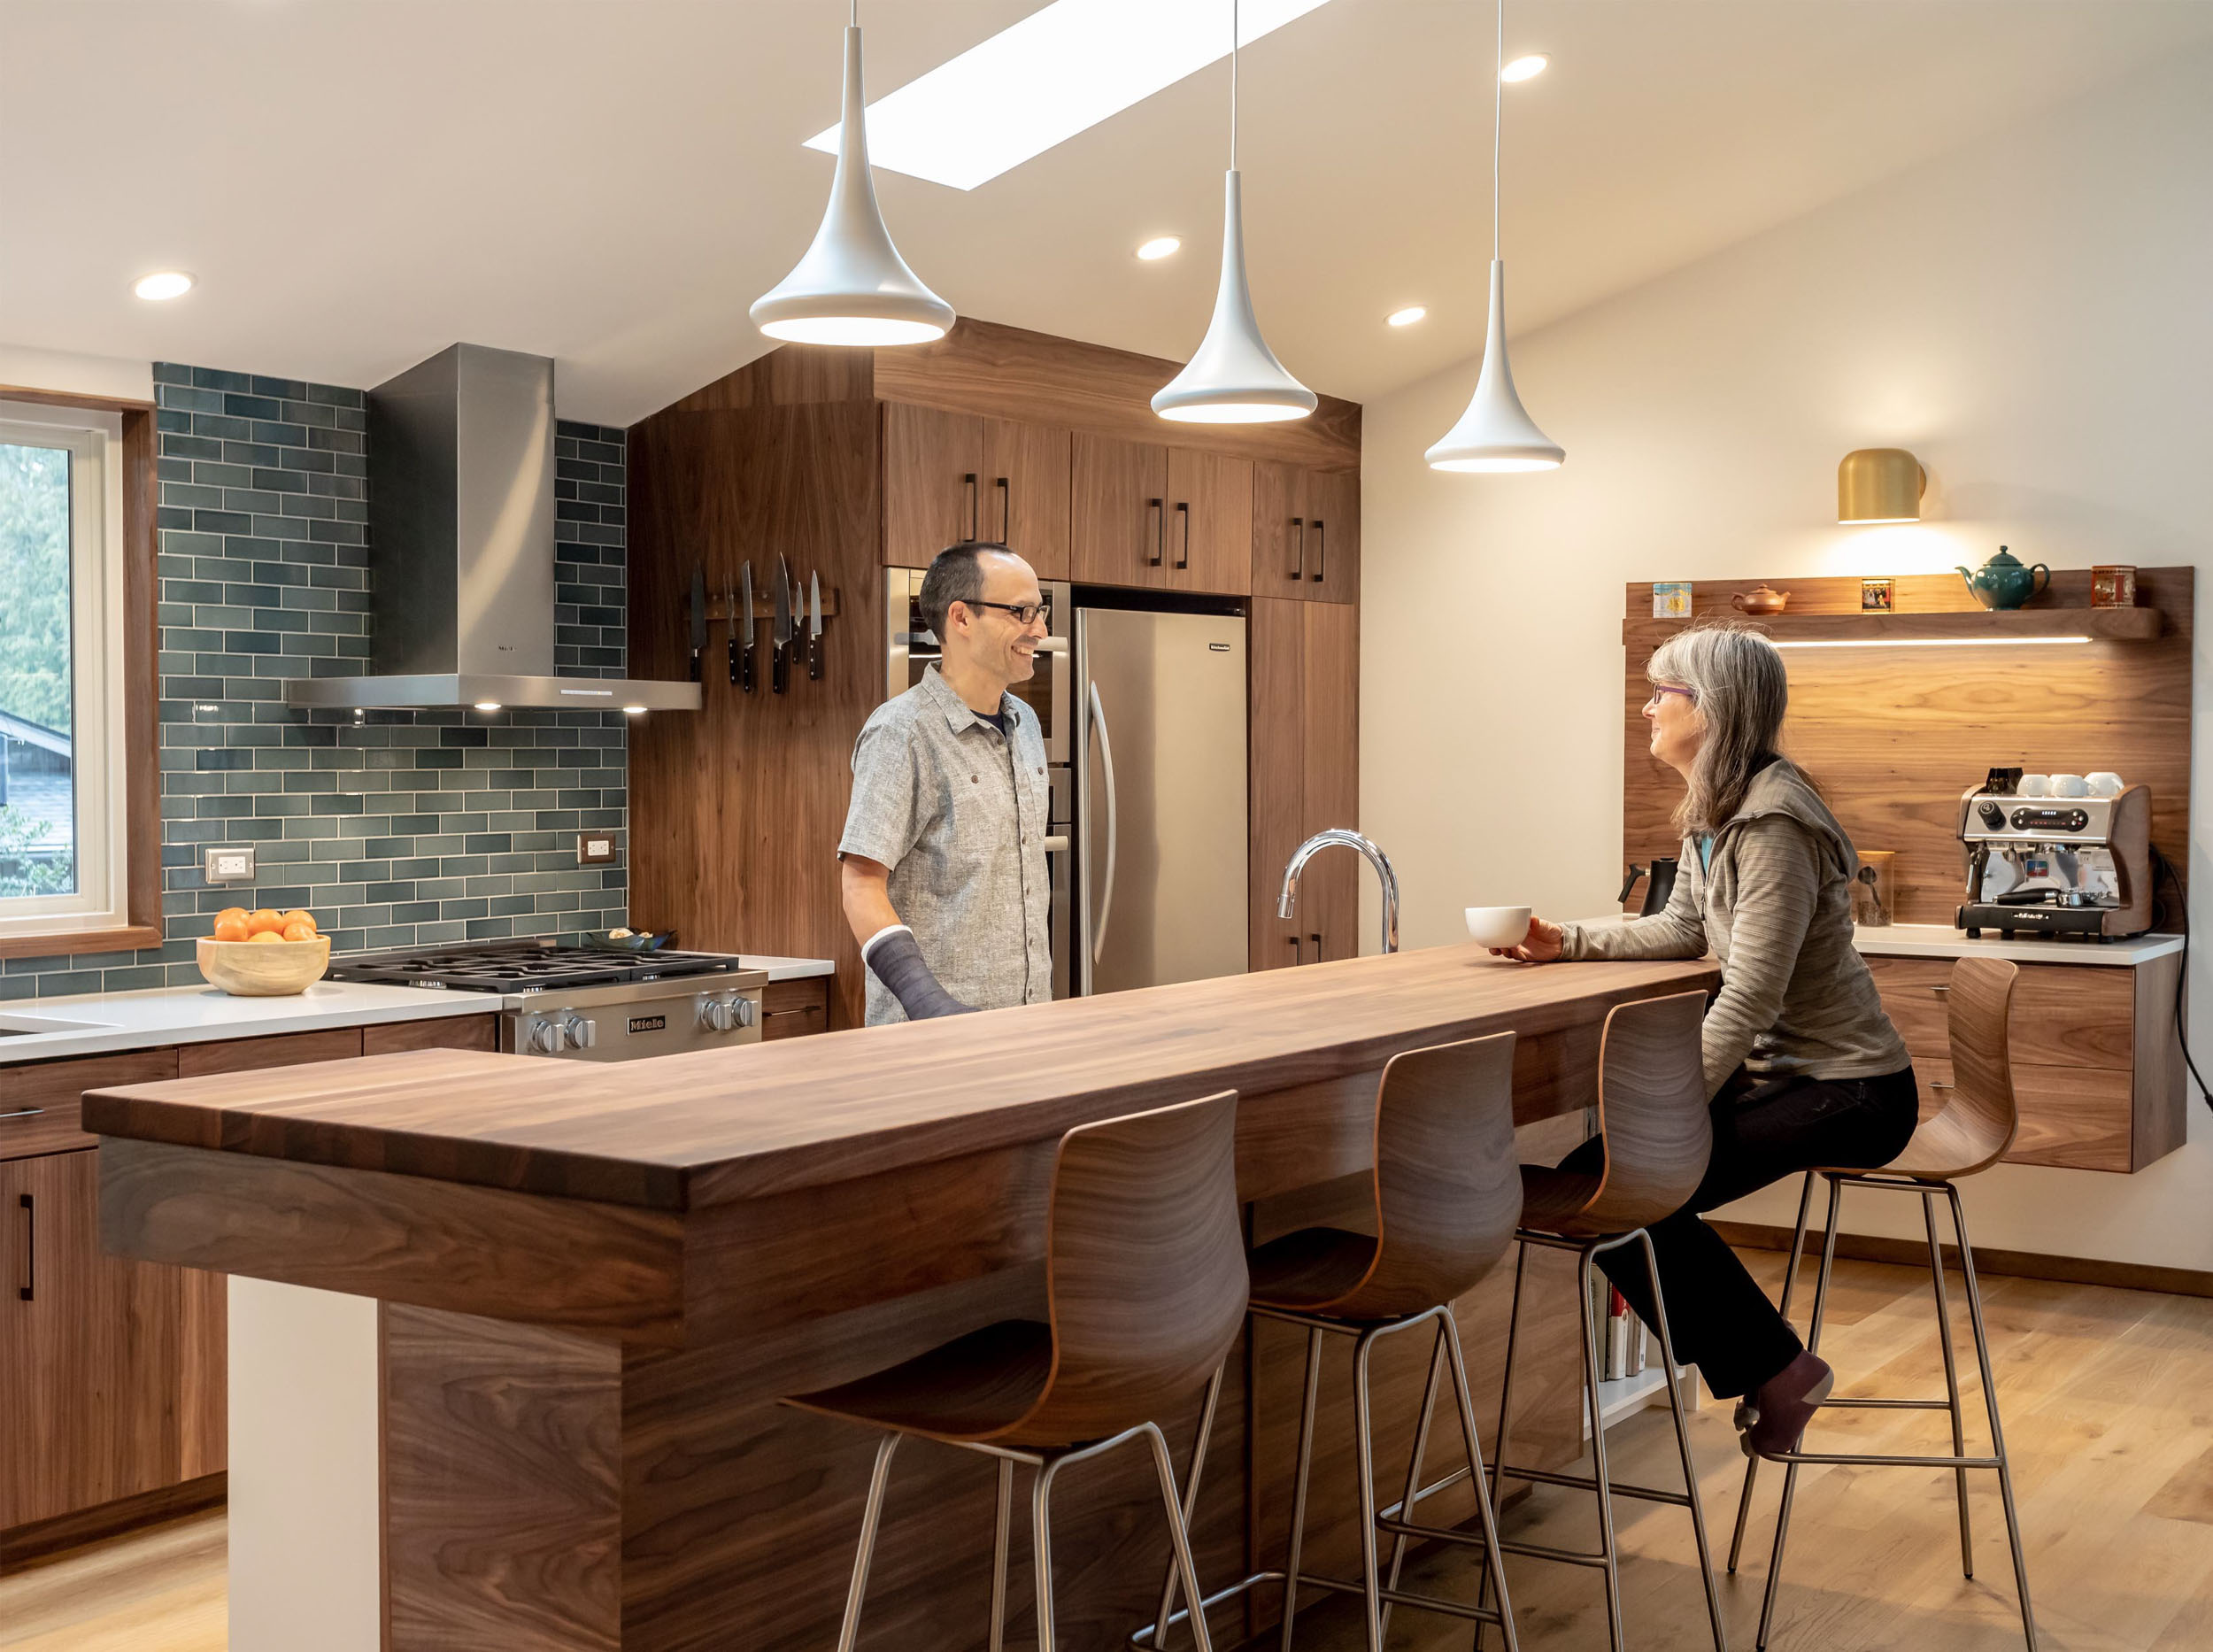 bellevue-home-renovation-kitchen-island-owners-wc-studio.jpg